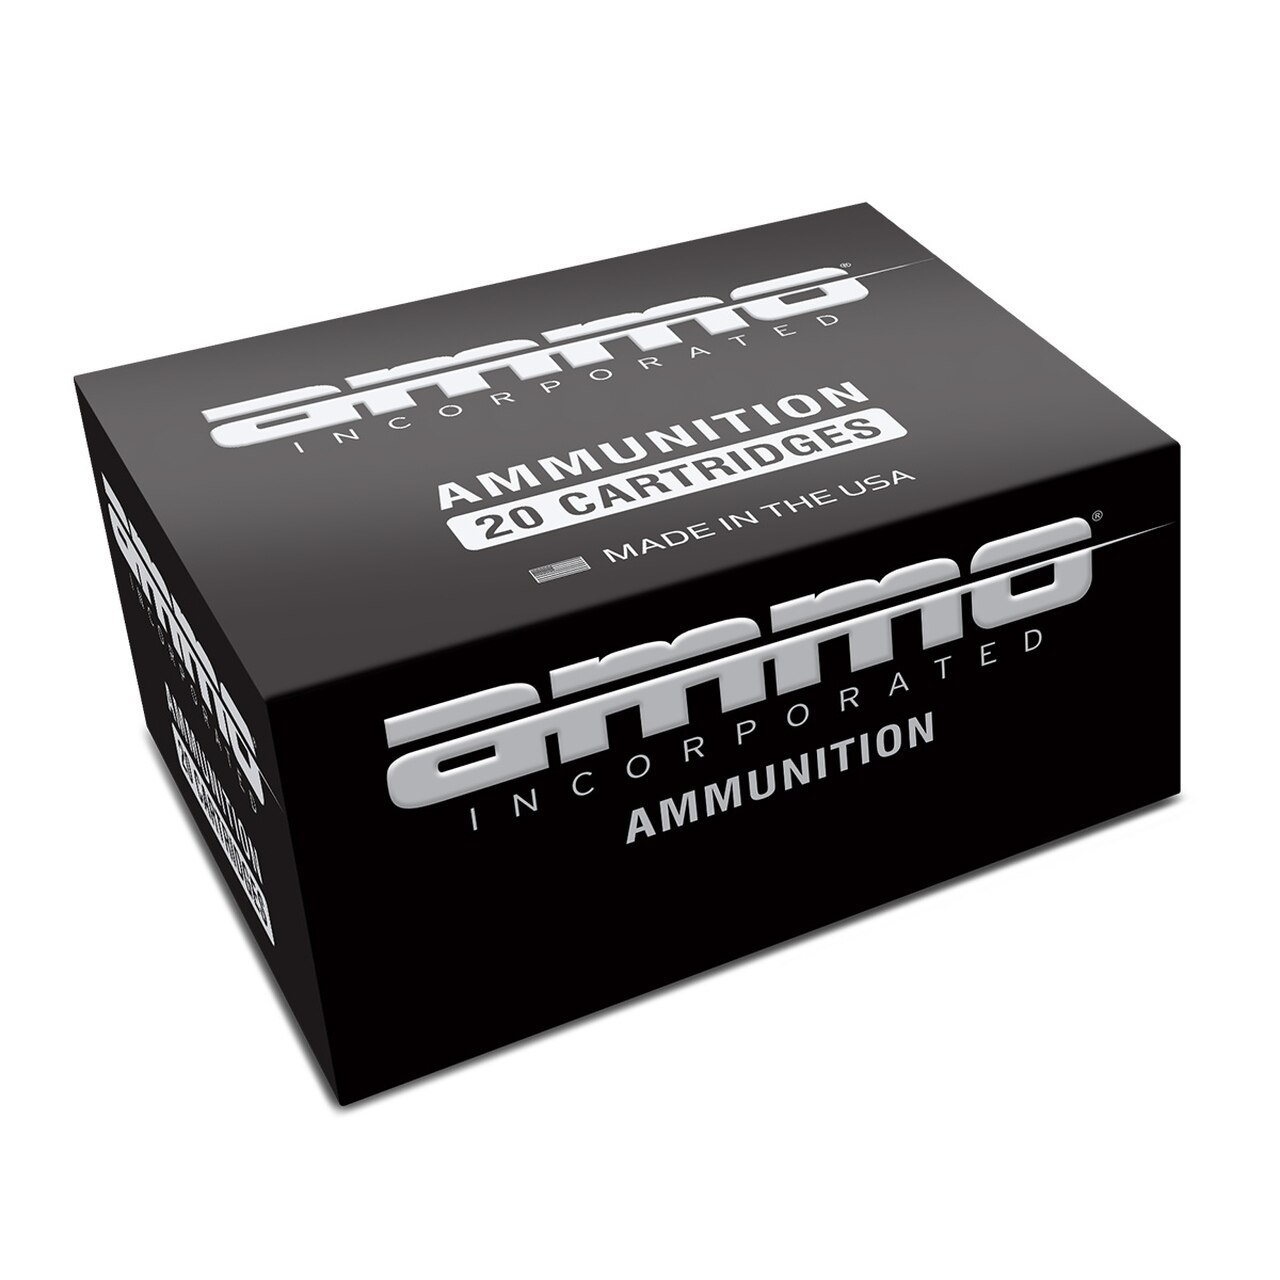 Image of Ammo Inc Black Label 9 mm 115 gr Hollow Point 20/Box 9mm